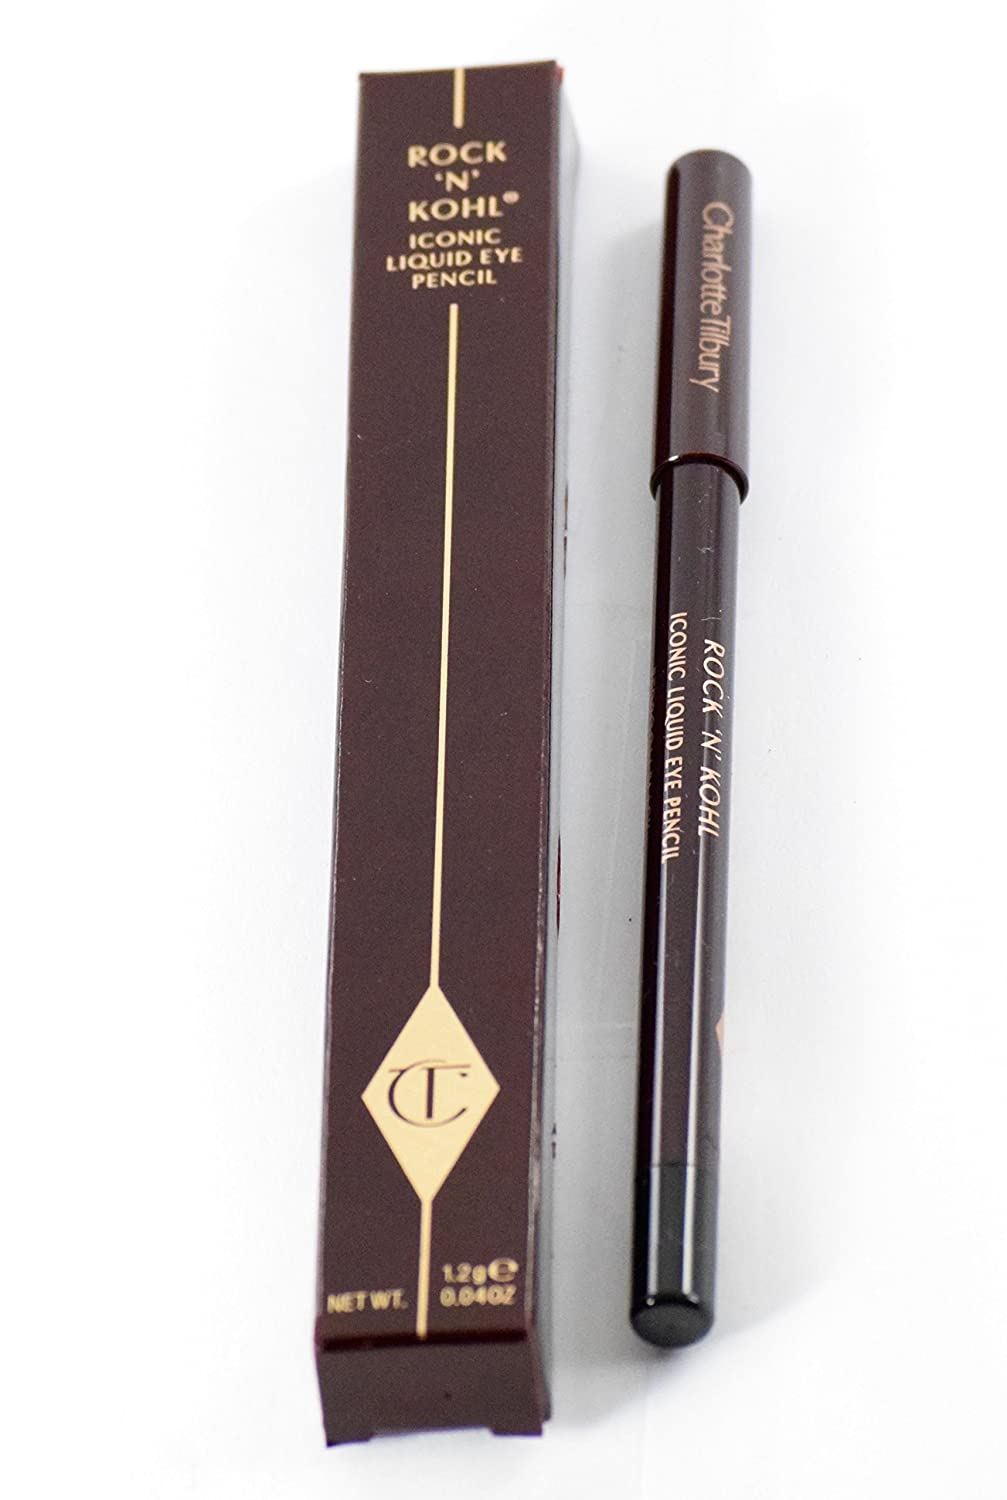 Charlotte Tilbury Rock 'N' Kohl Liquid Eye Pencil